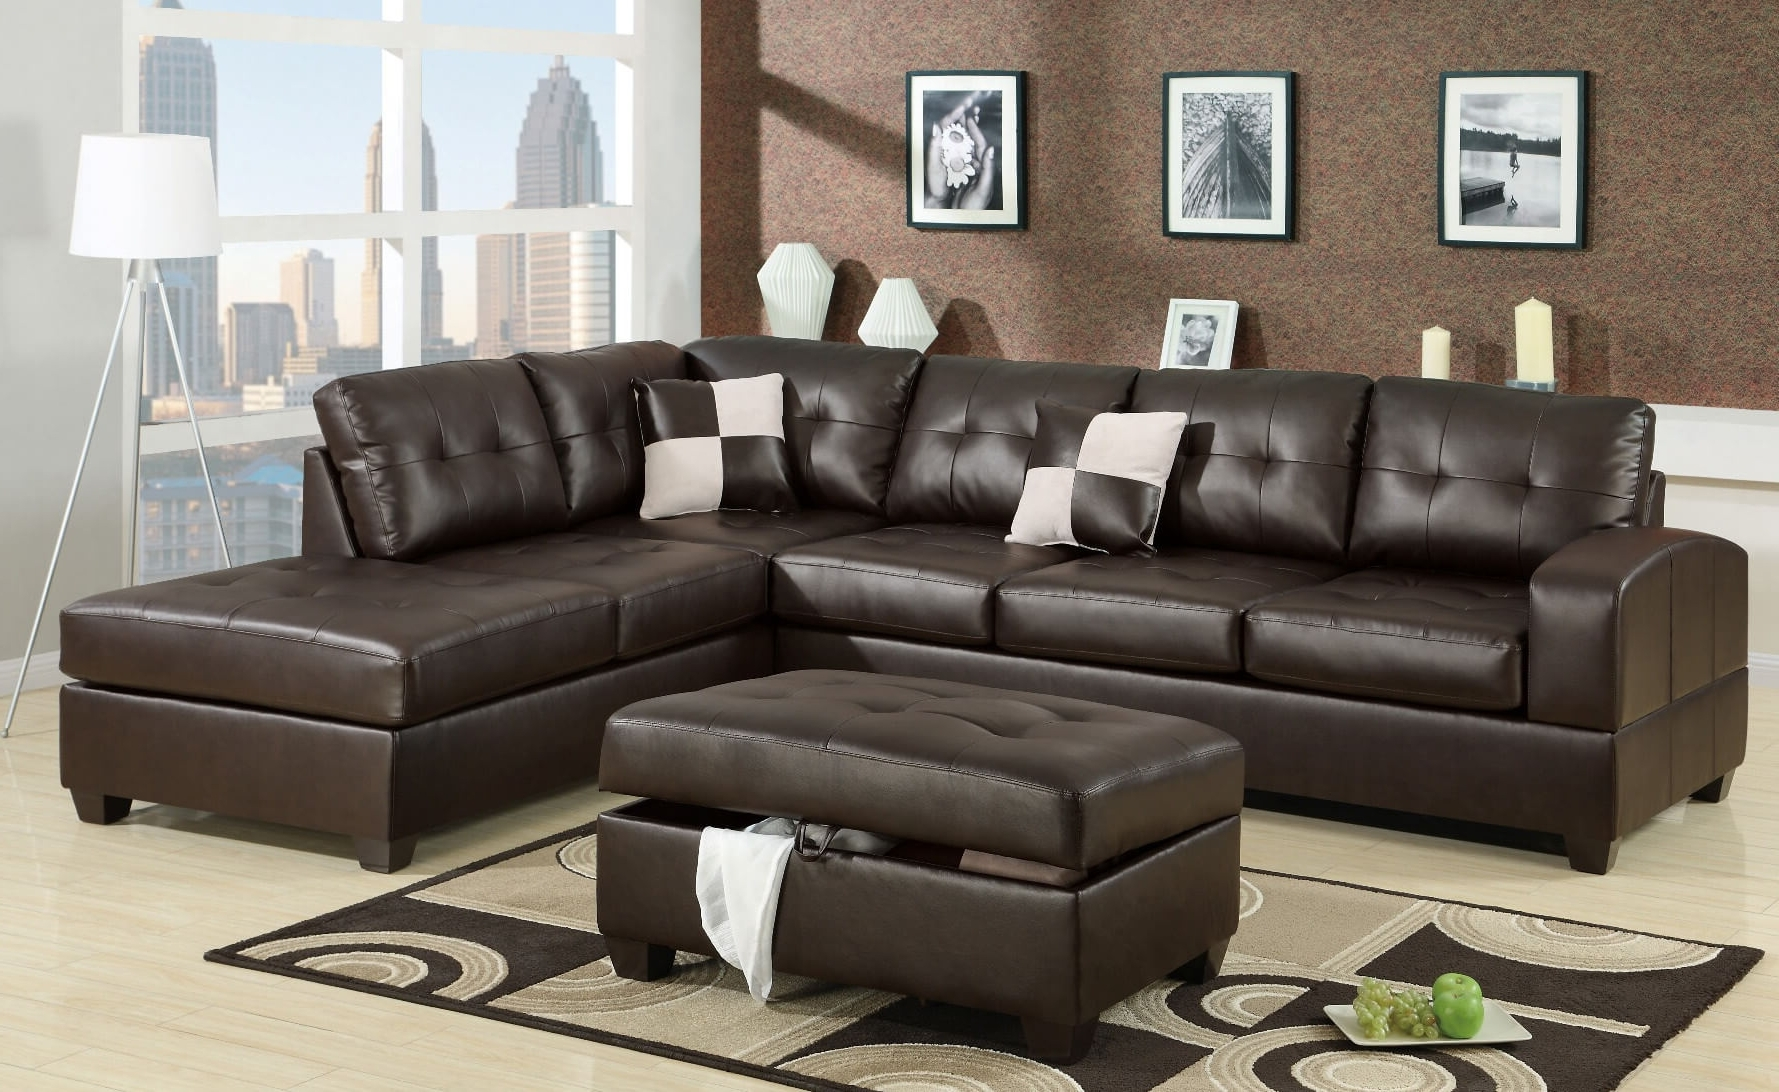 Sectional Sofas Under 1000 Within 2018 100 Awesome Sectional Sofas Under $1,000 (2018) (View 14 of 20)